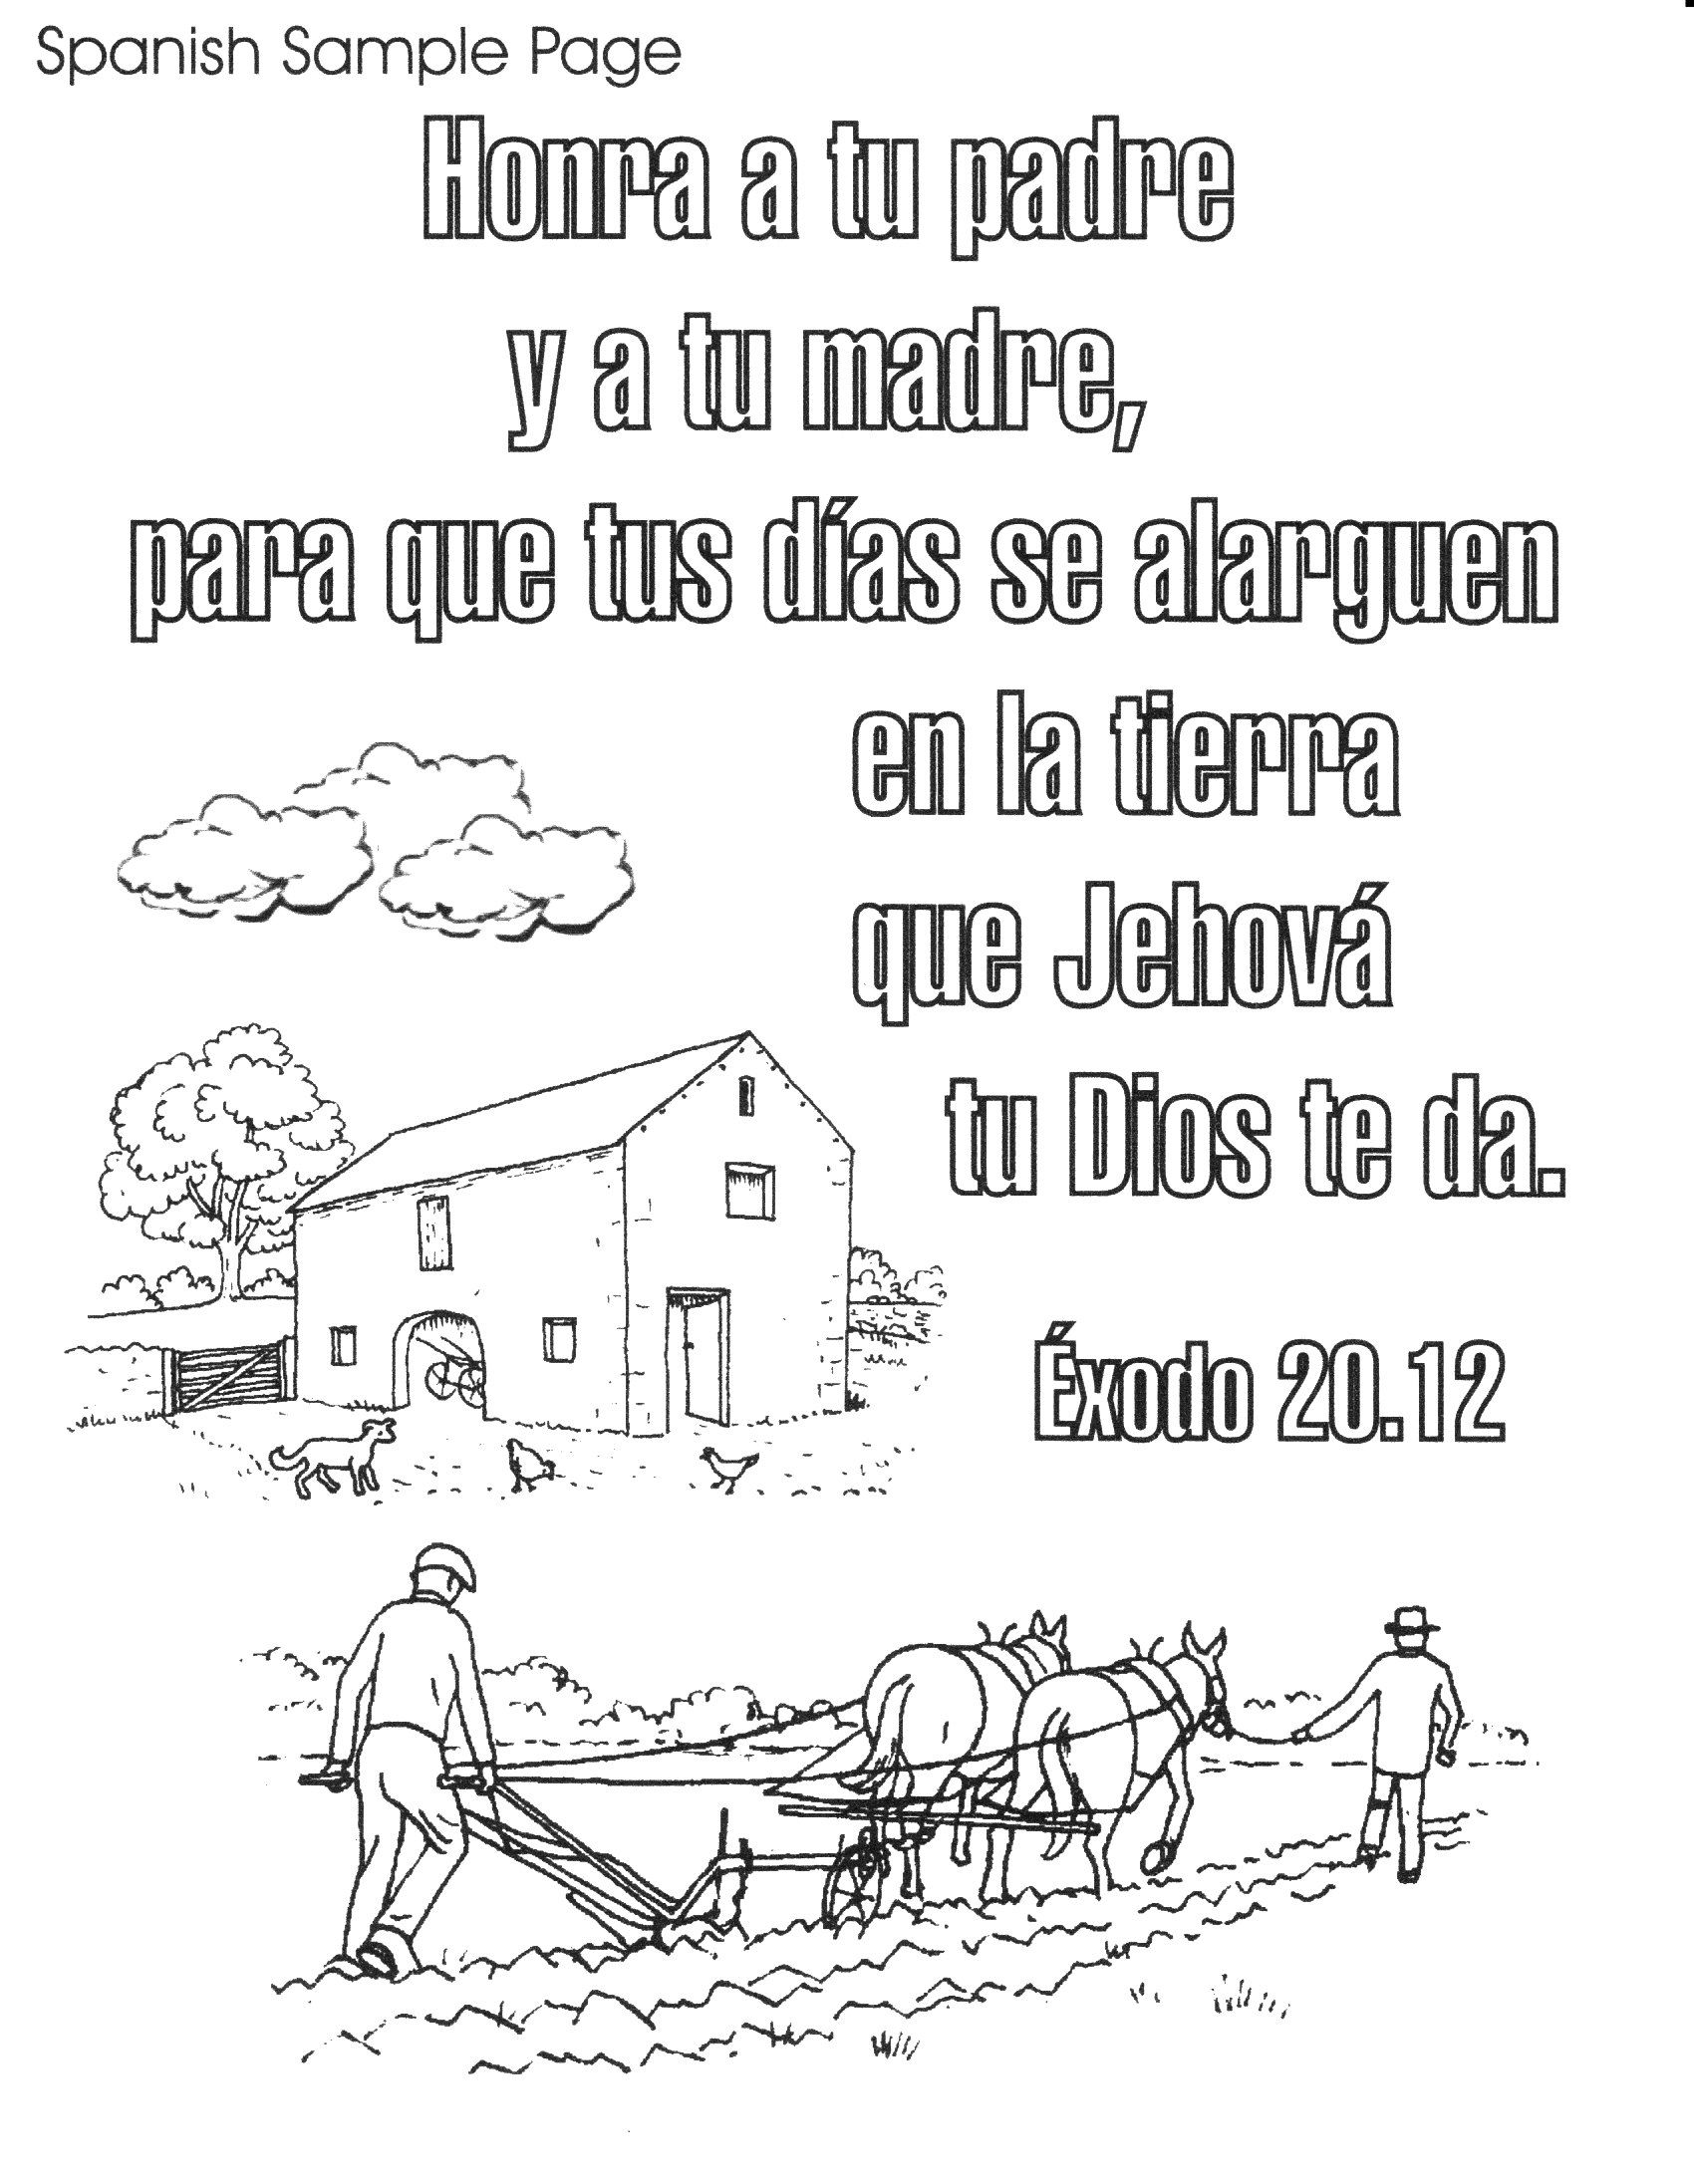 Coloring Pages Bible Coloring Pages For Kids With Verses christian coloring pages for children free printable spanish bible az pages